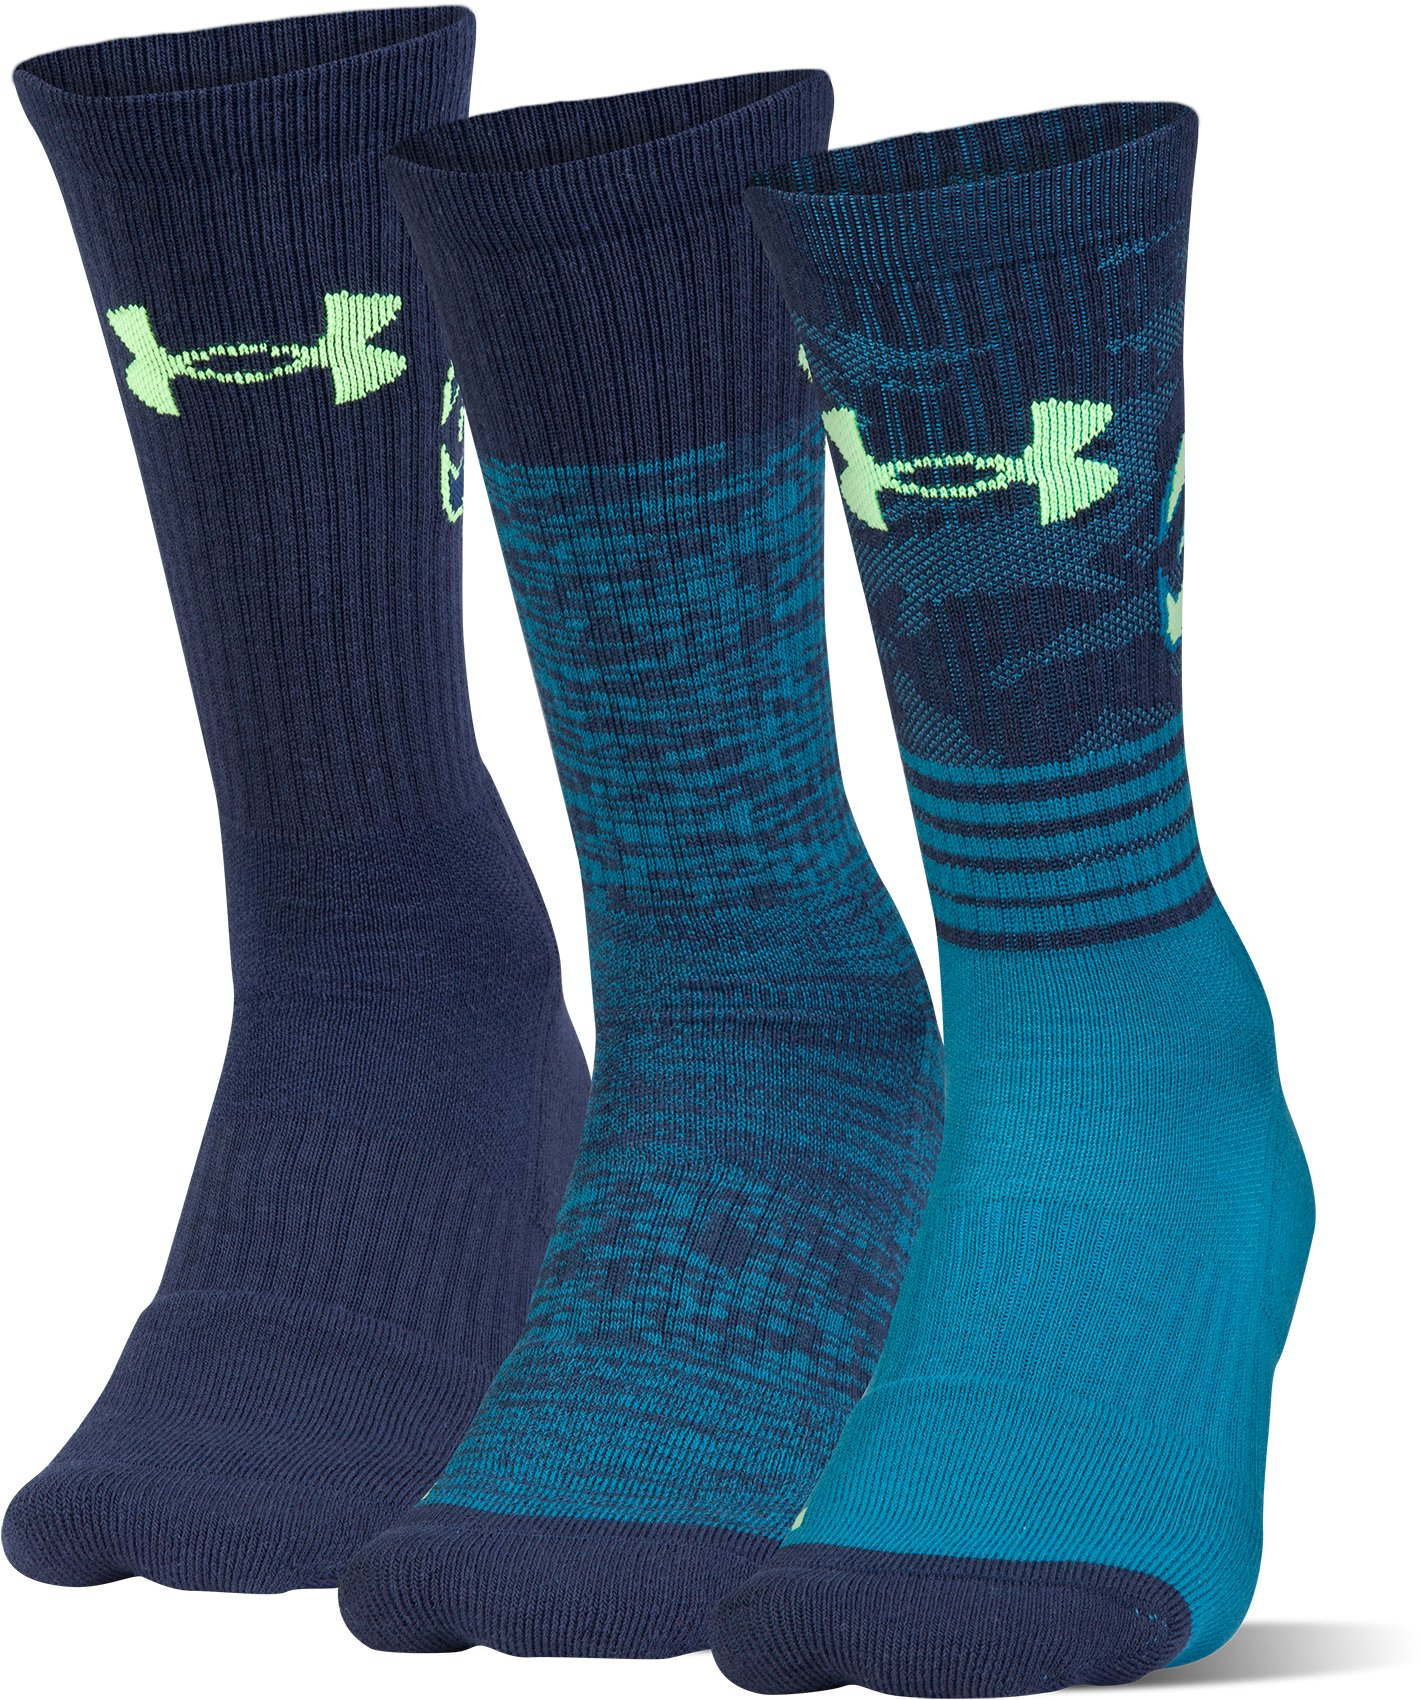 Men's SC30 Phenom Crew Socks – 3-Pack, BAYOU BLUE